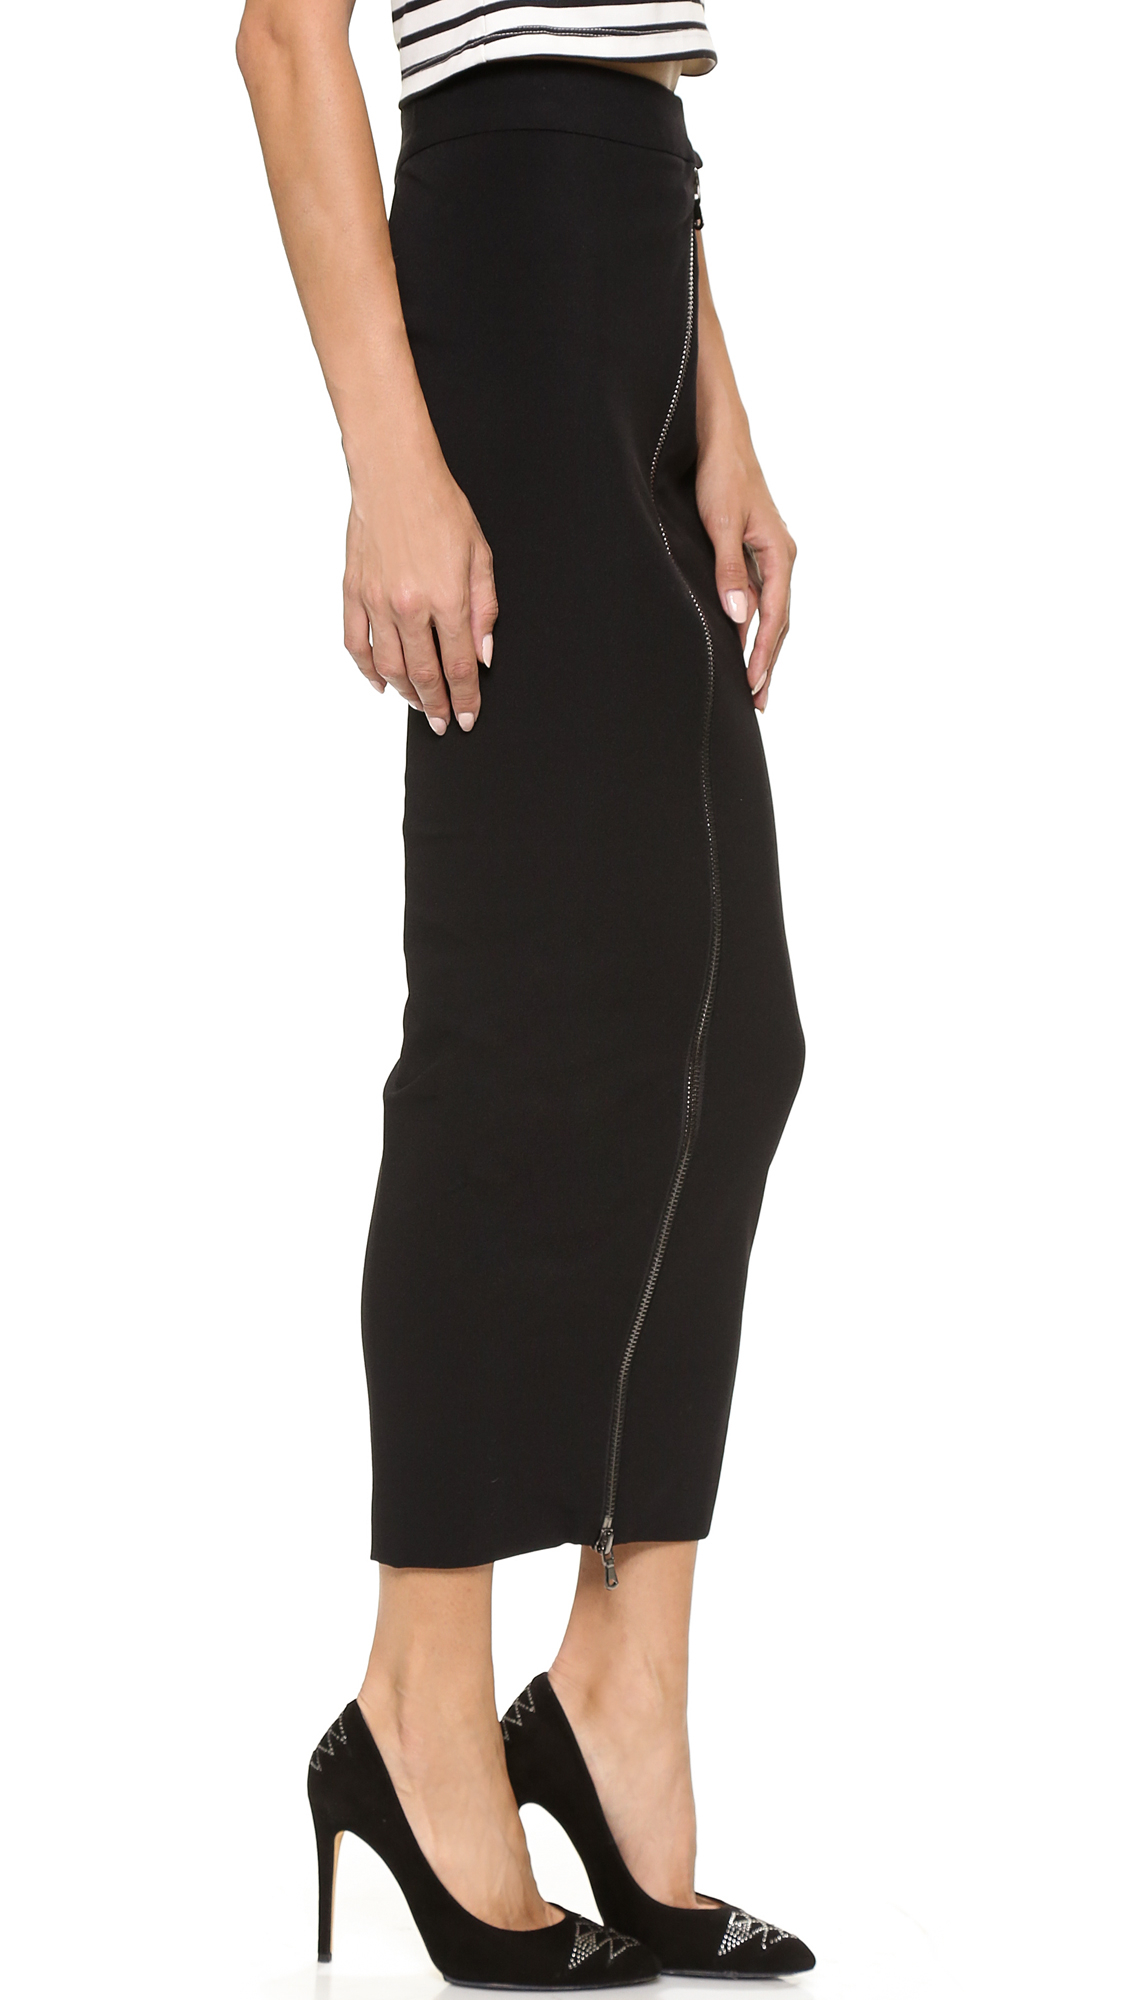 Balmain Zip Pencil Maxi Skirt Black in Black | Lyst